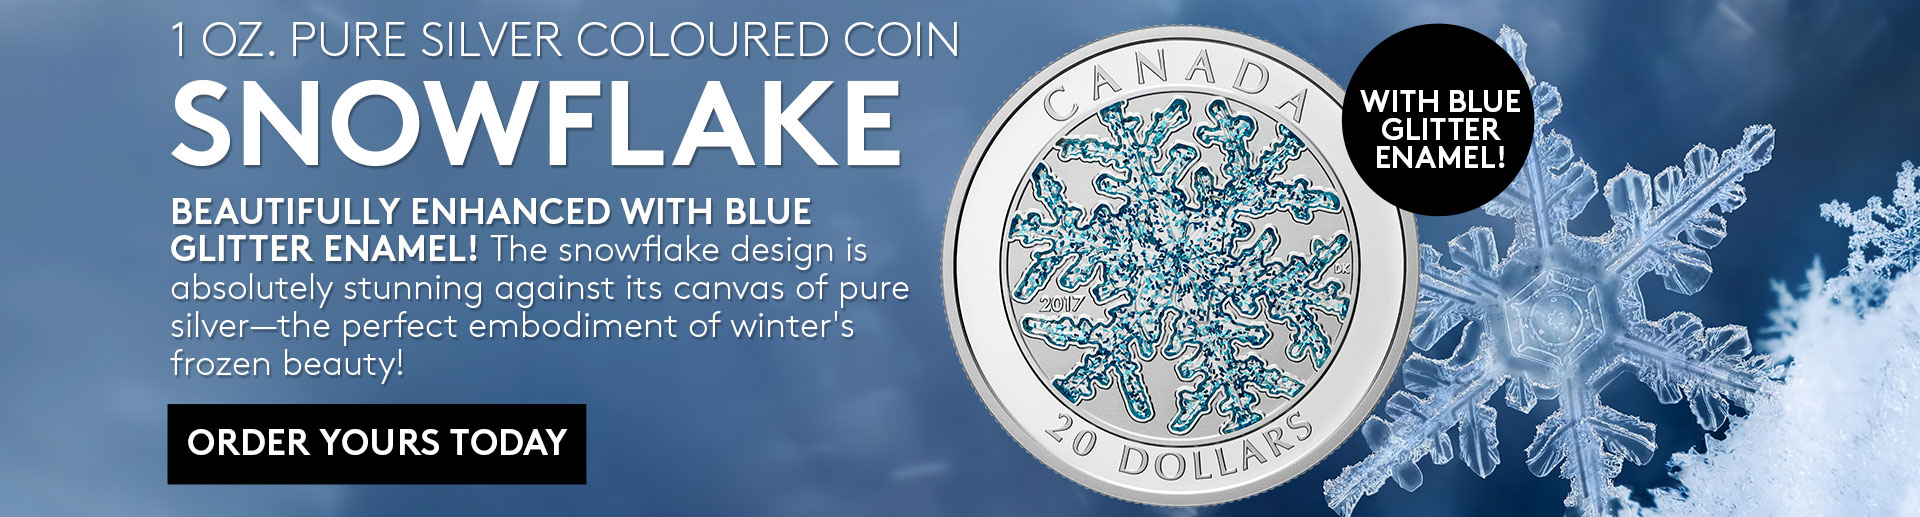 Snowflake Depicted In Pure Silver Coin